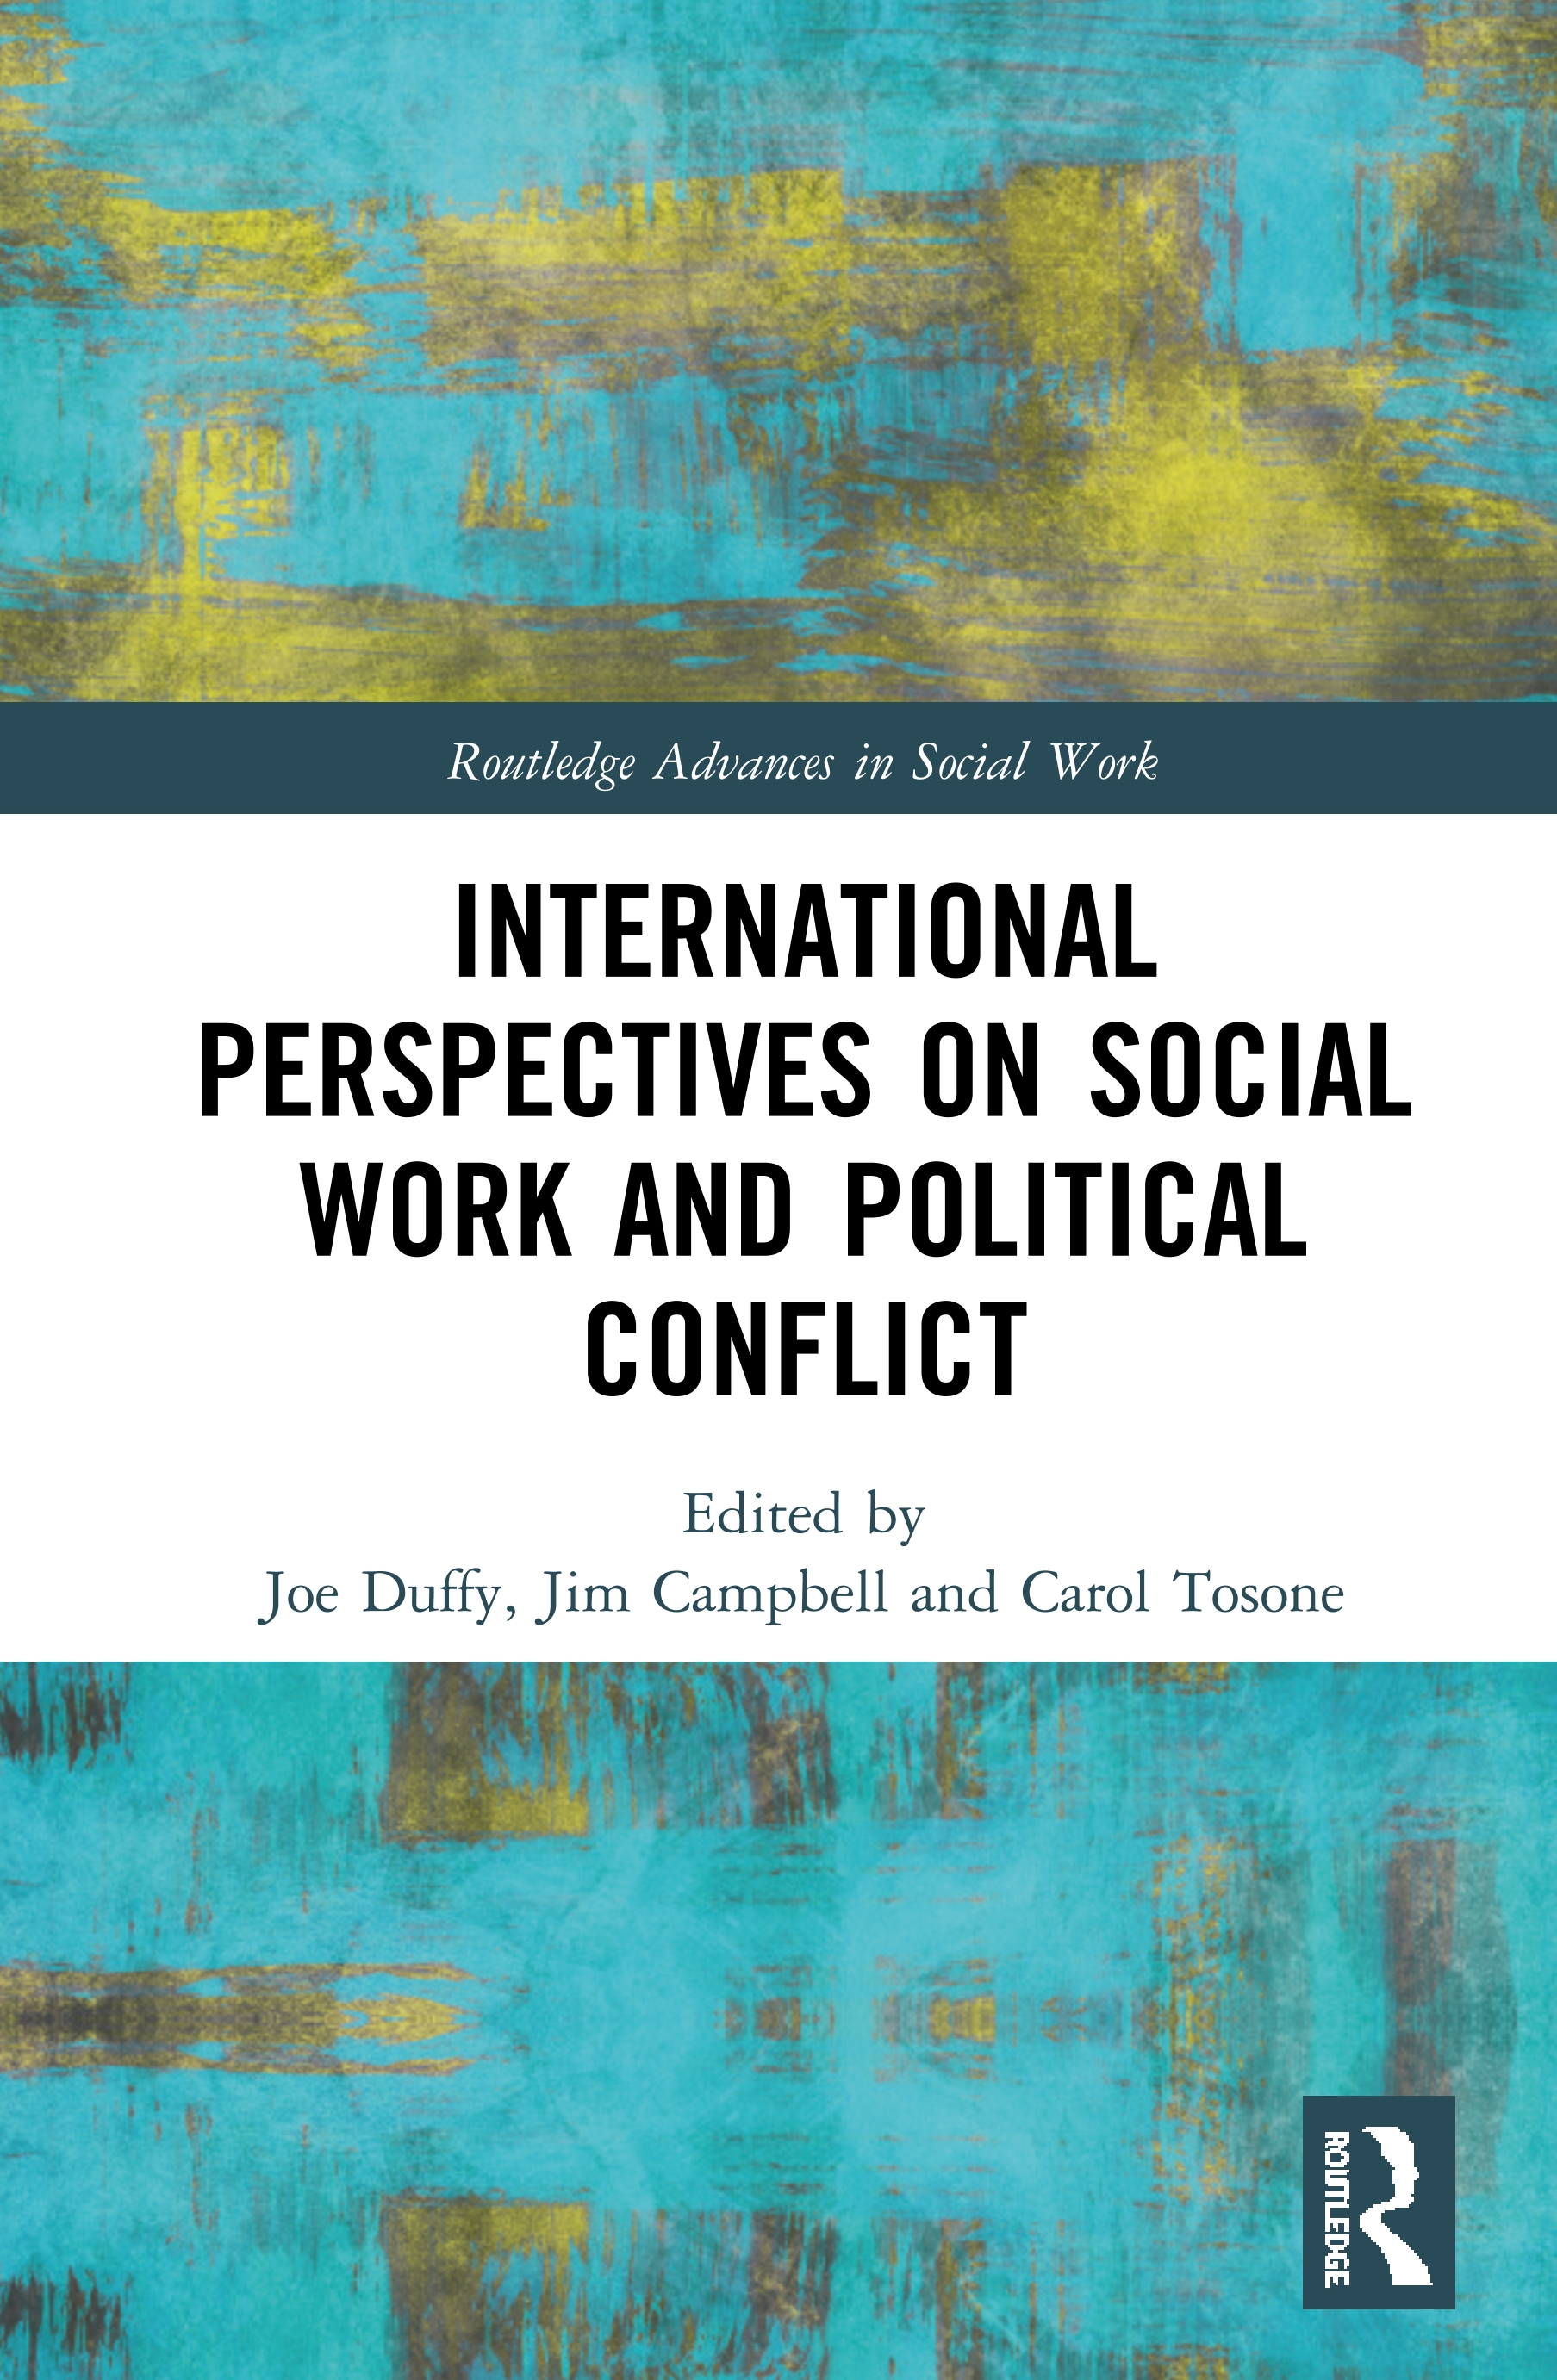 International Perspectives on Social Work and Political Conflict book cover